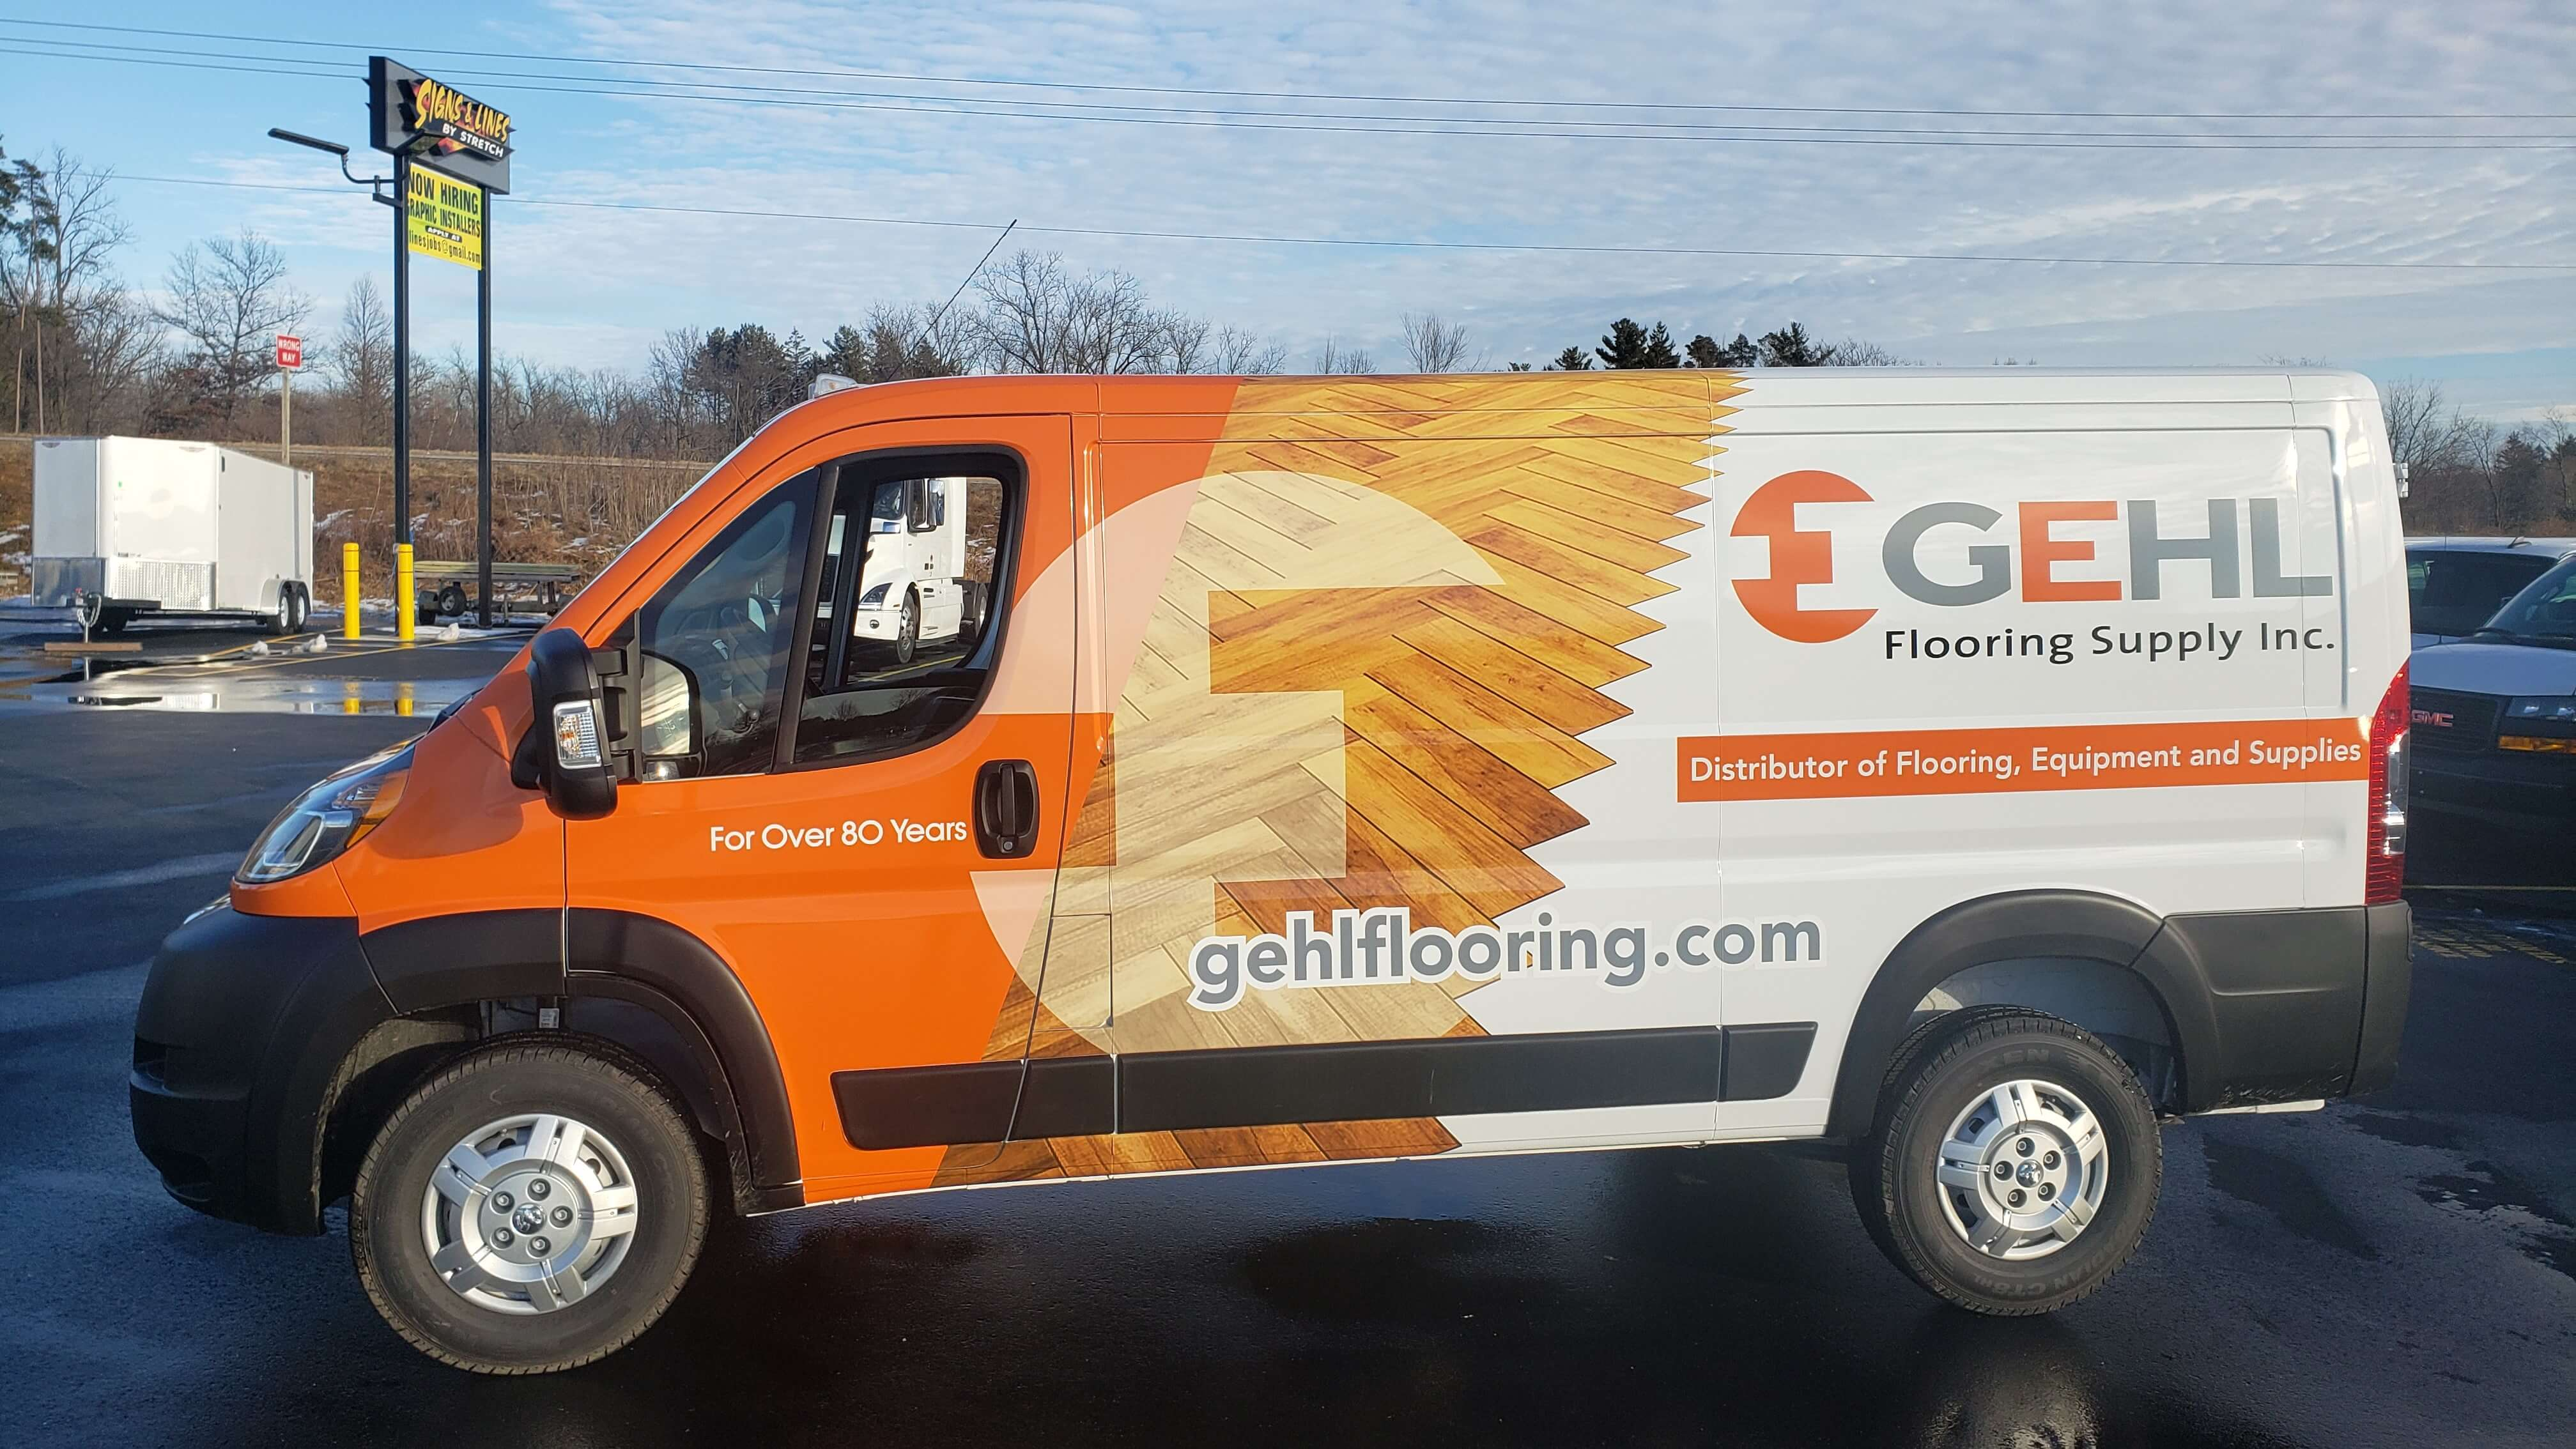 GEHL Flooring Fleet Vehicle Wrap by Signs and Lines